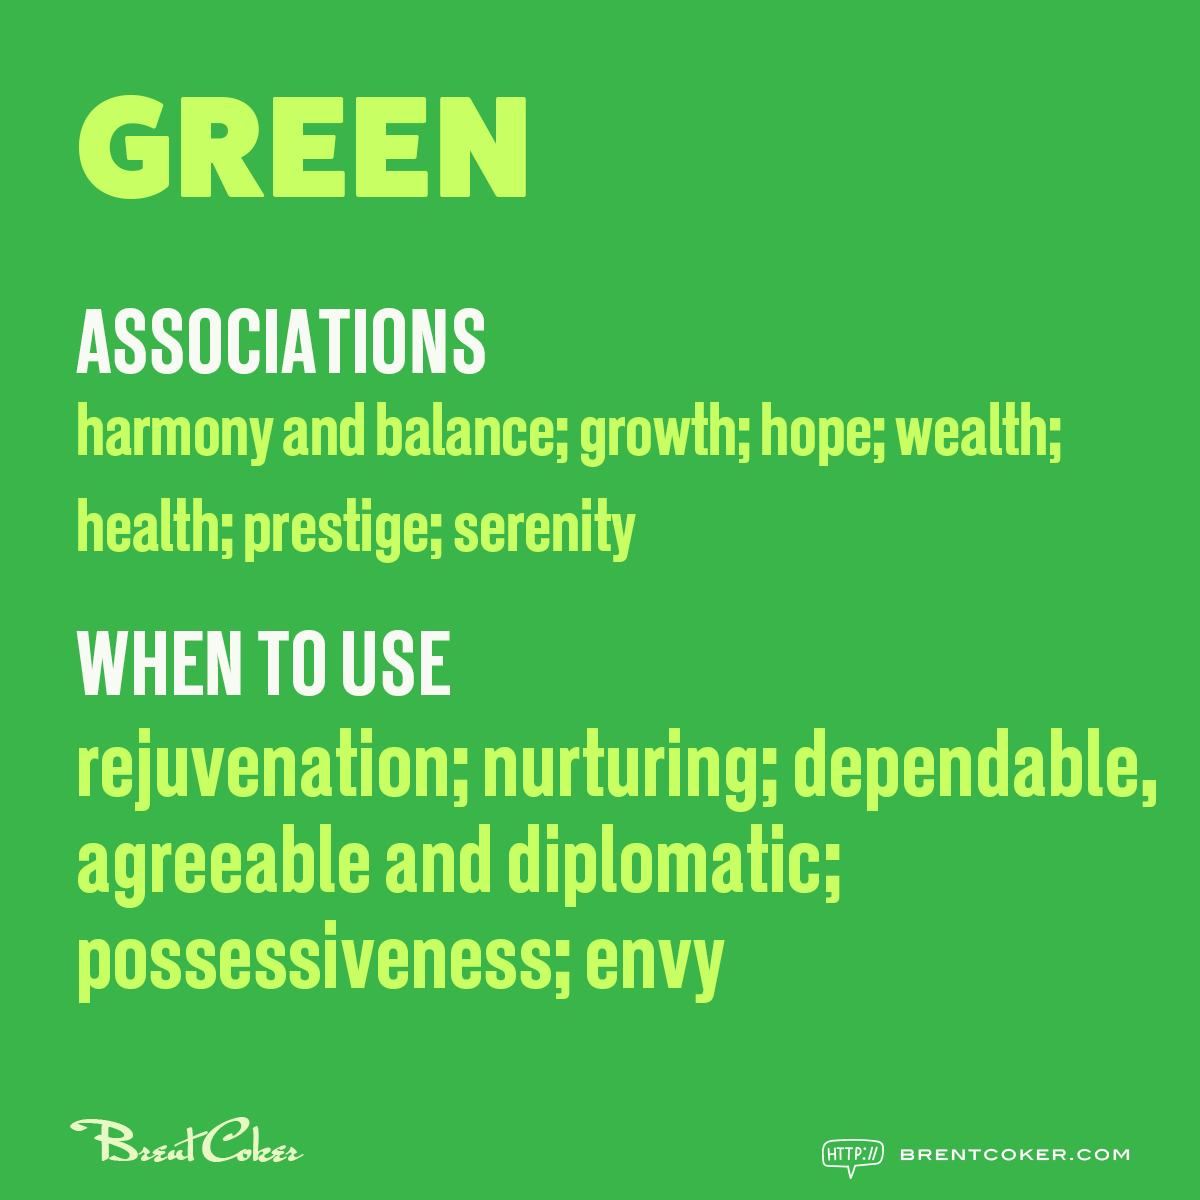 The psychology of colour in marketing Green